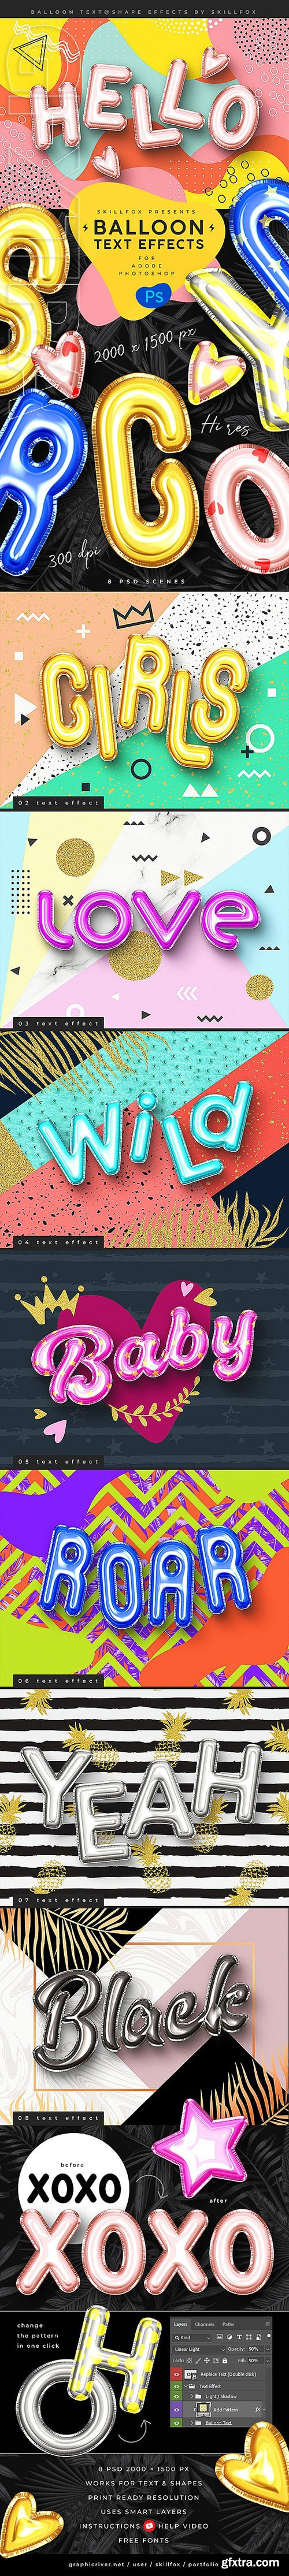 GraphicRiver - Foil Balloon Text Effects - Vol 2 24271889